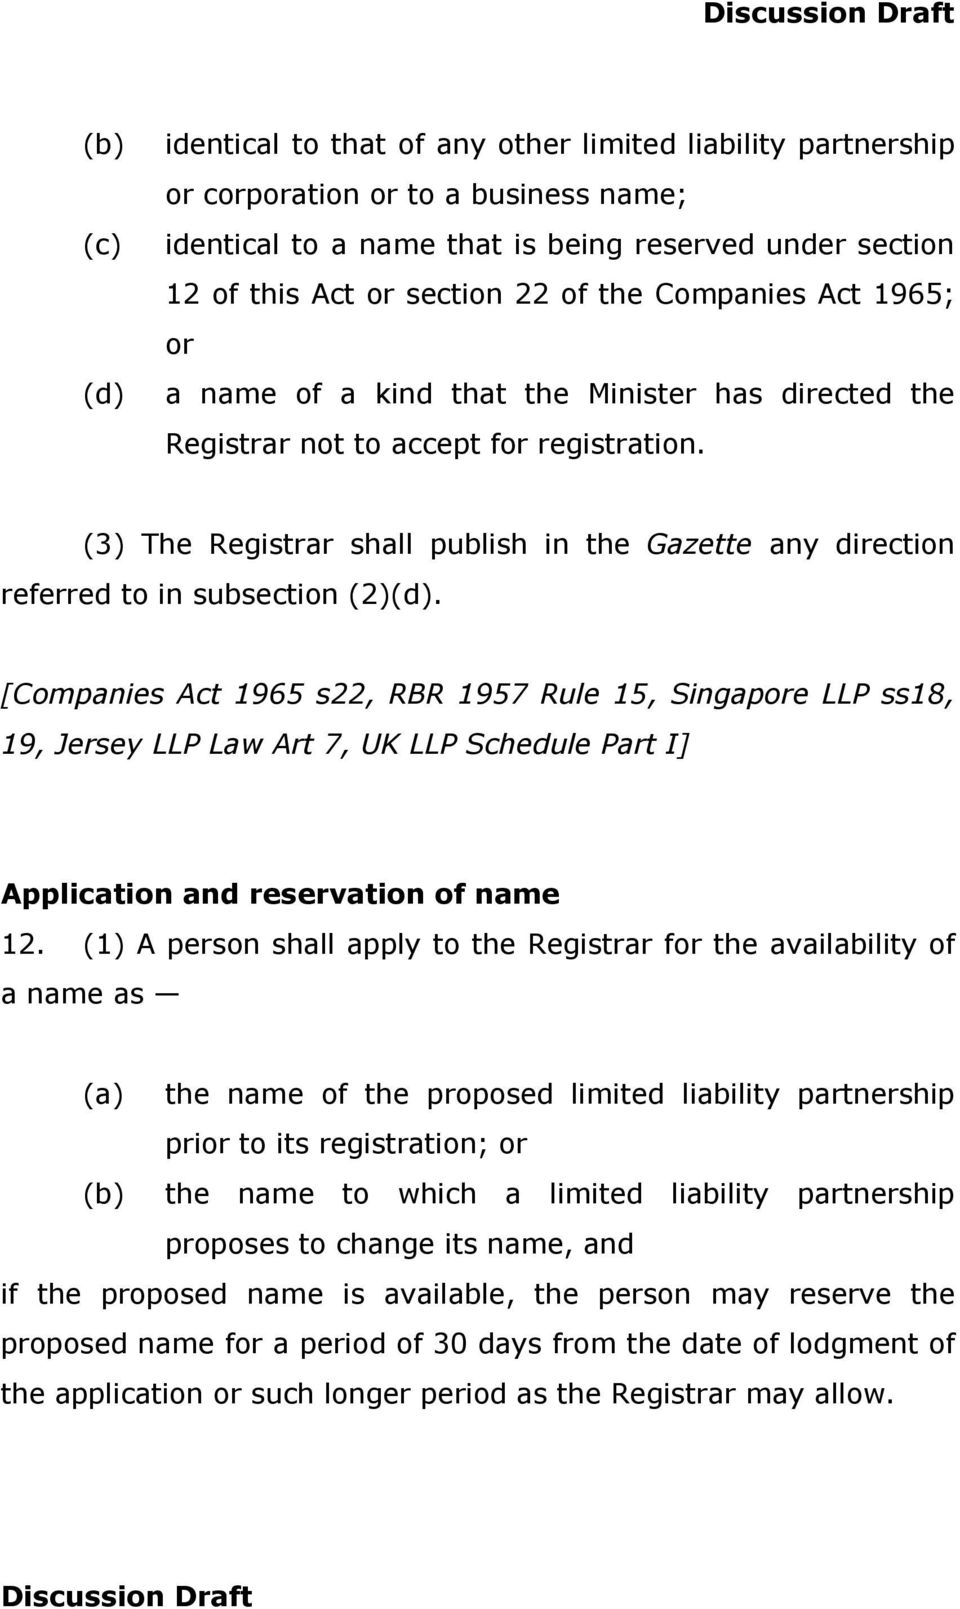 (3) The Registrar shall publish in the Gazette any direction referred to in subsection (2)(d).